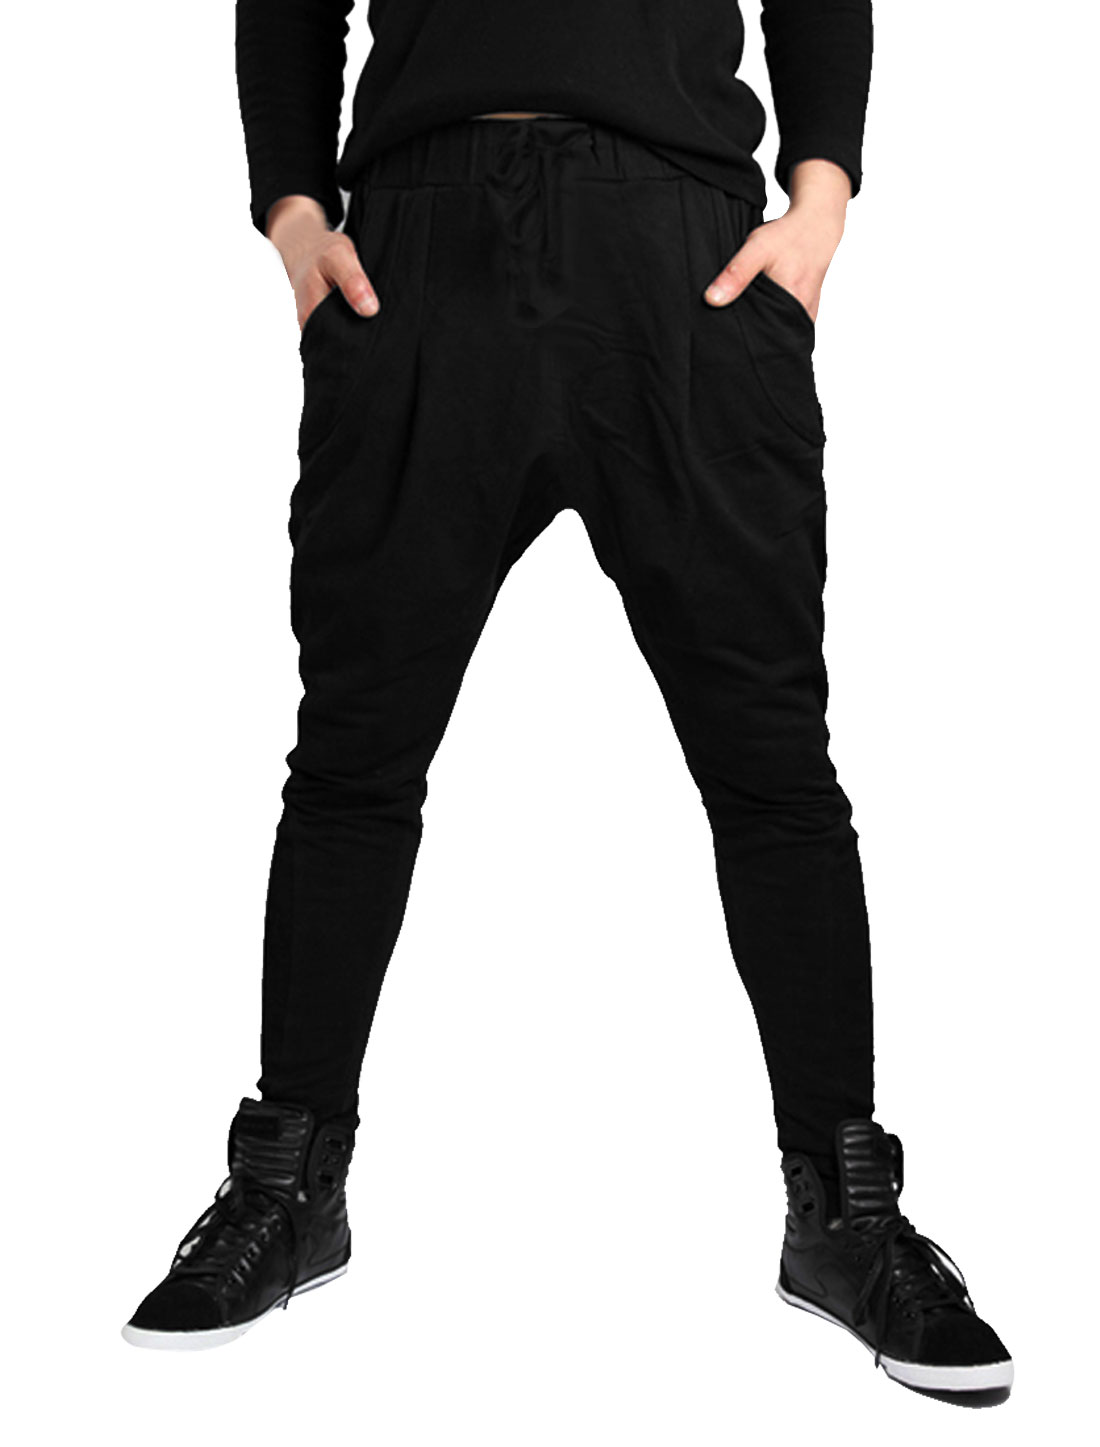 Men Black Stylish Drawstring Elastic Waist Casual Harem Pants W34